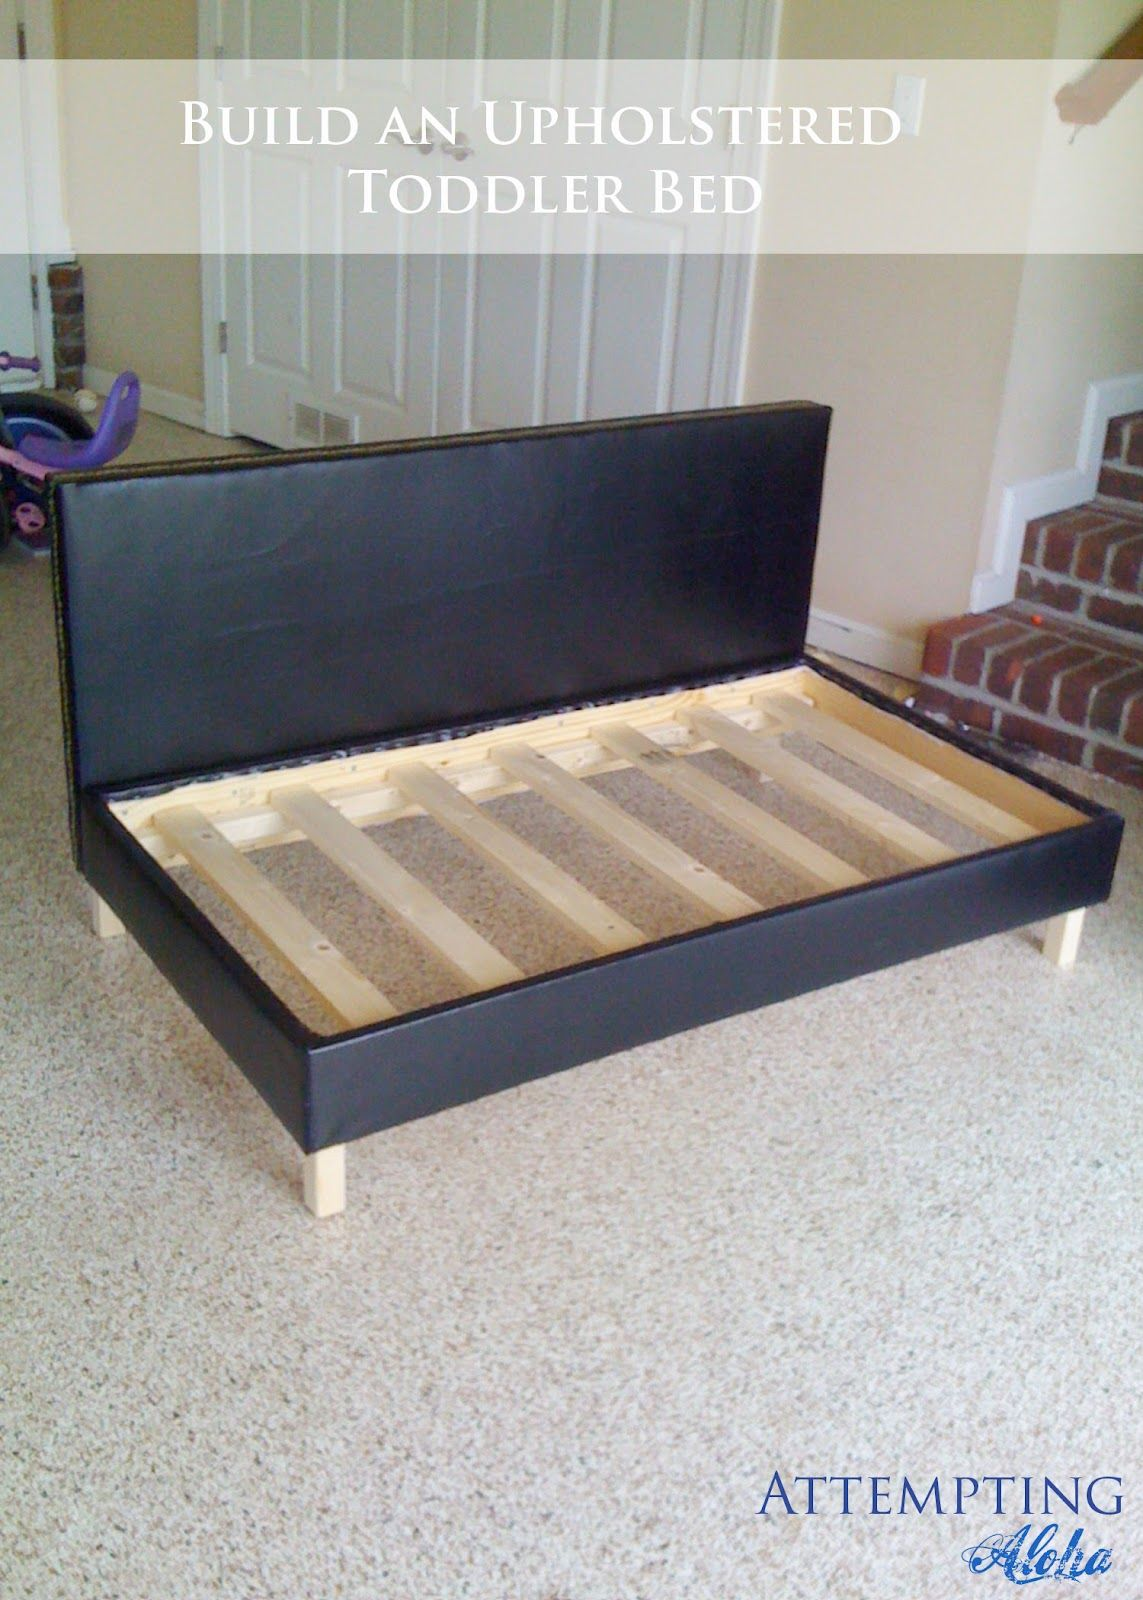 diy murphy bed sofa flip sofas living room upholstered toddler couch plans kid stuff